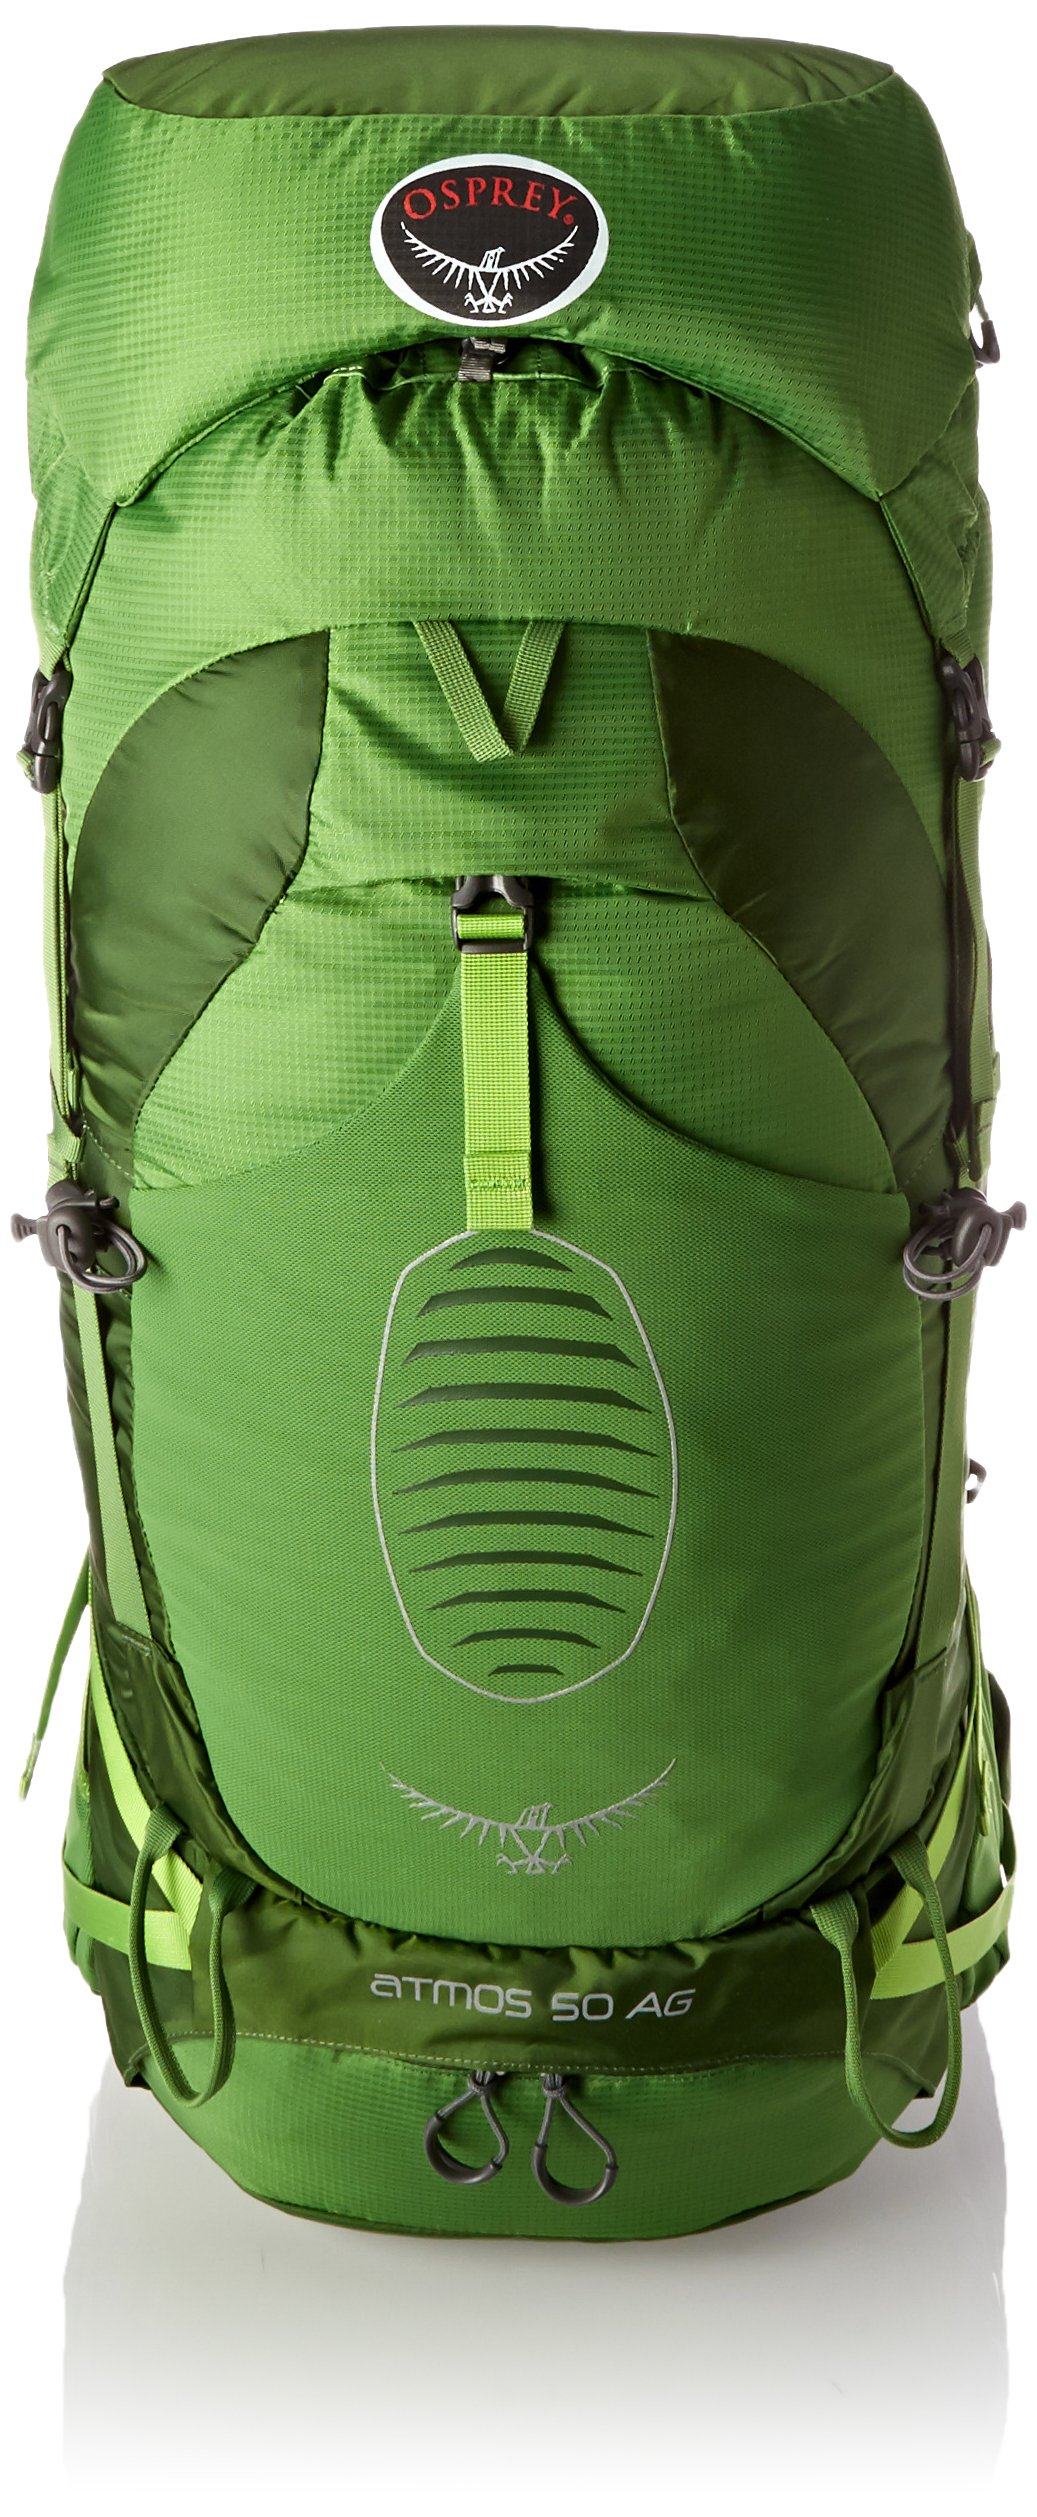 Osprey Men's Atmos AG 50 Backpack, Absinthe Green, Medium